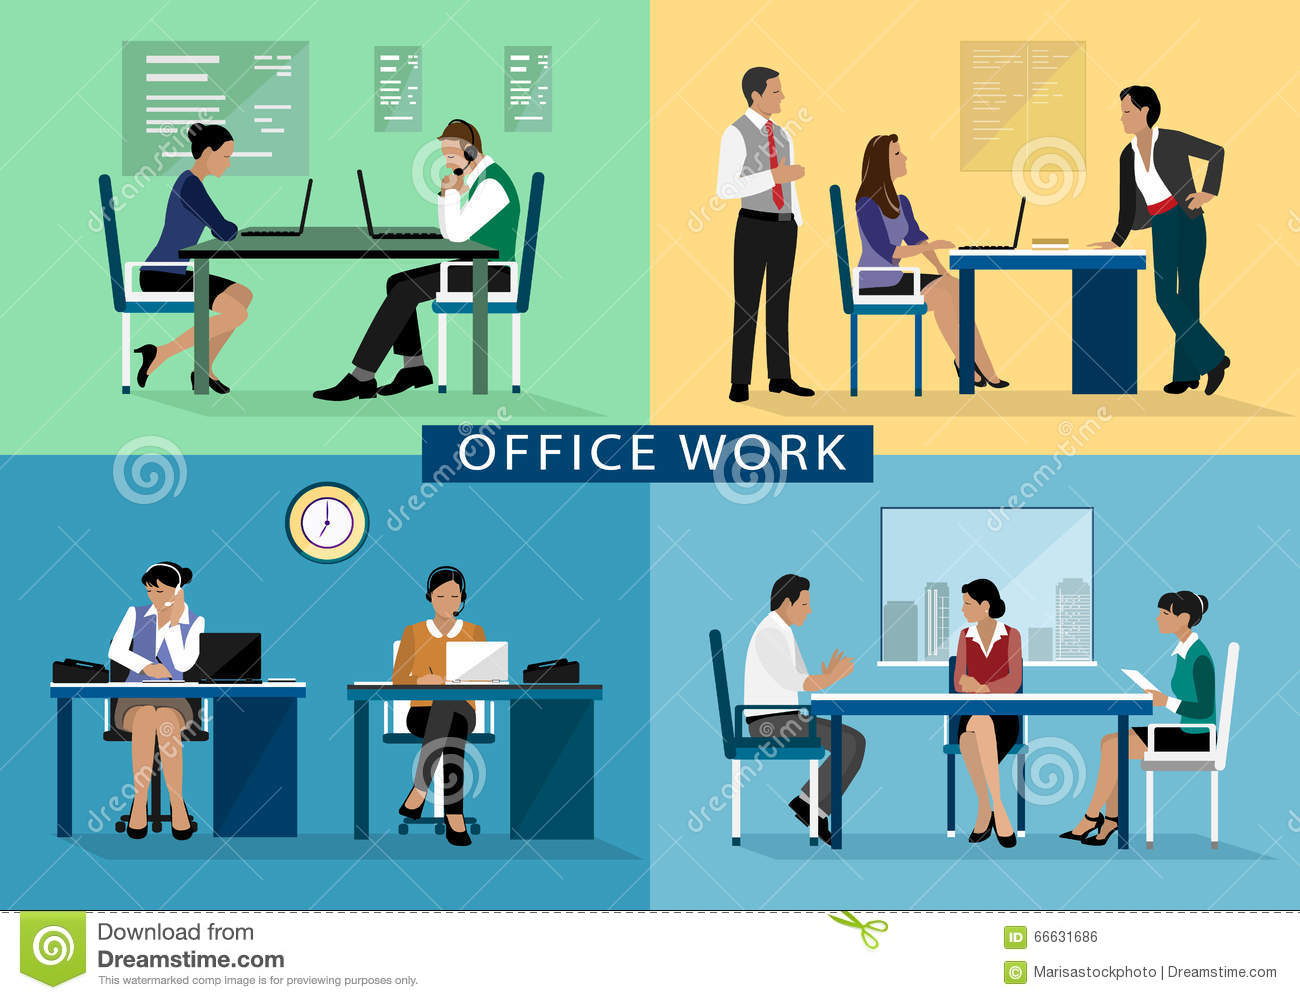 2c - Introduction to the workplace